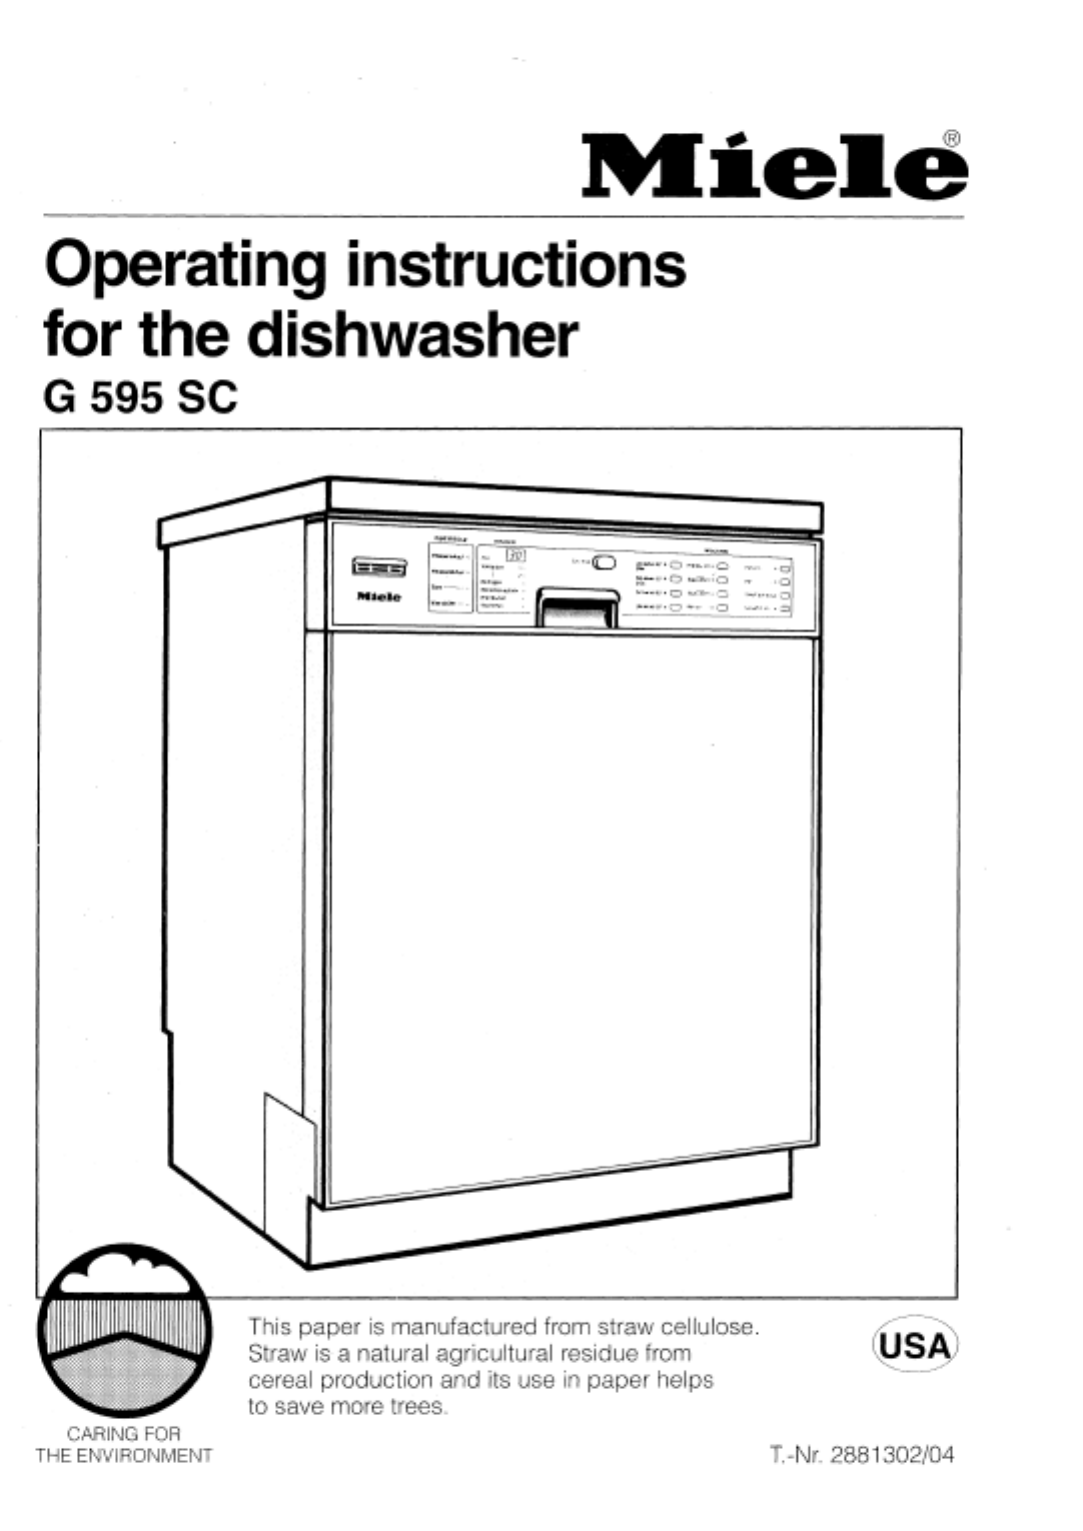 miele dishwasher g 595 sc user guide manualsonline com rh manualsonline com miele dishwasher service manual pdf miele dishwasher g1220sc service manual